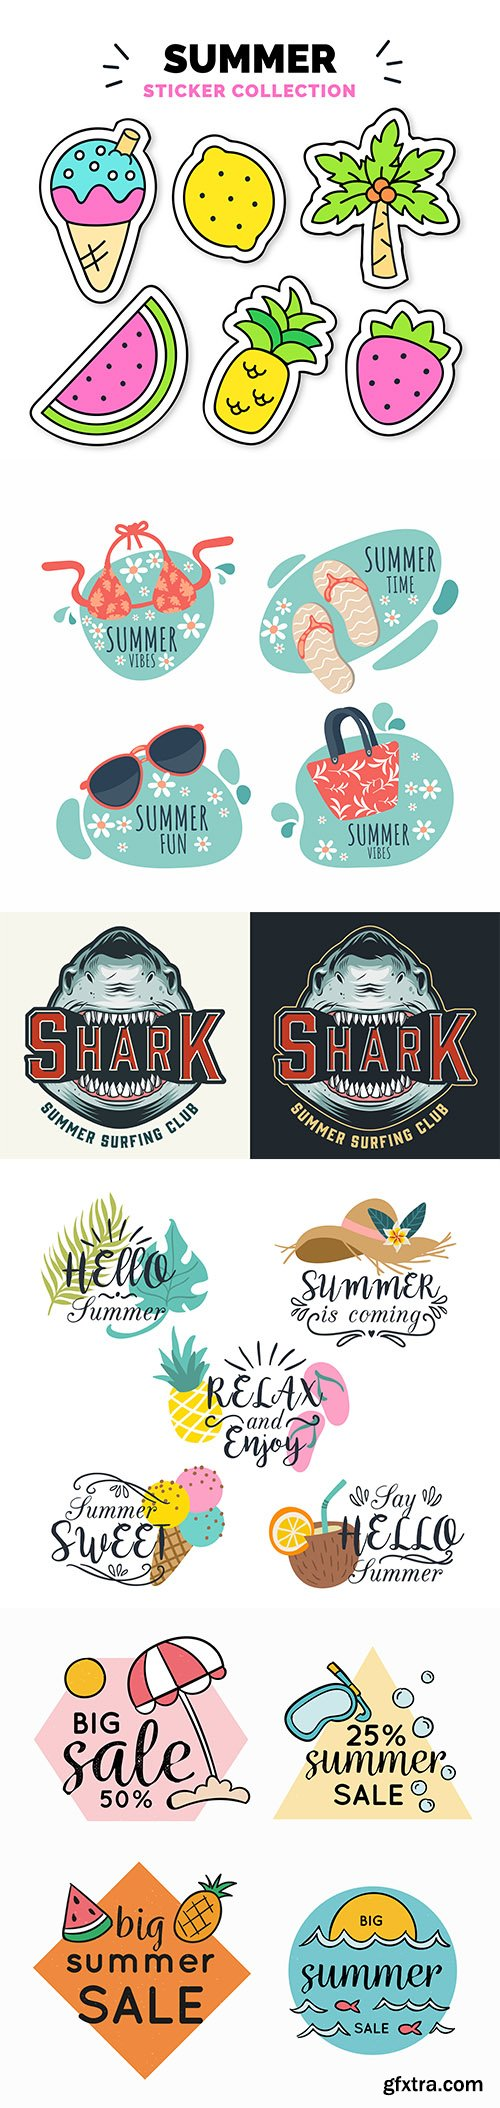 Colorful hand-drawn summer badge collection and surfing club logo